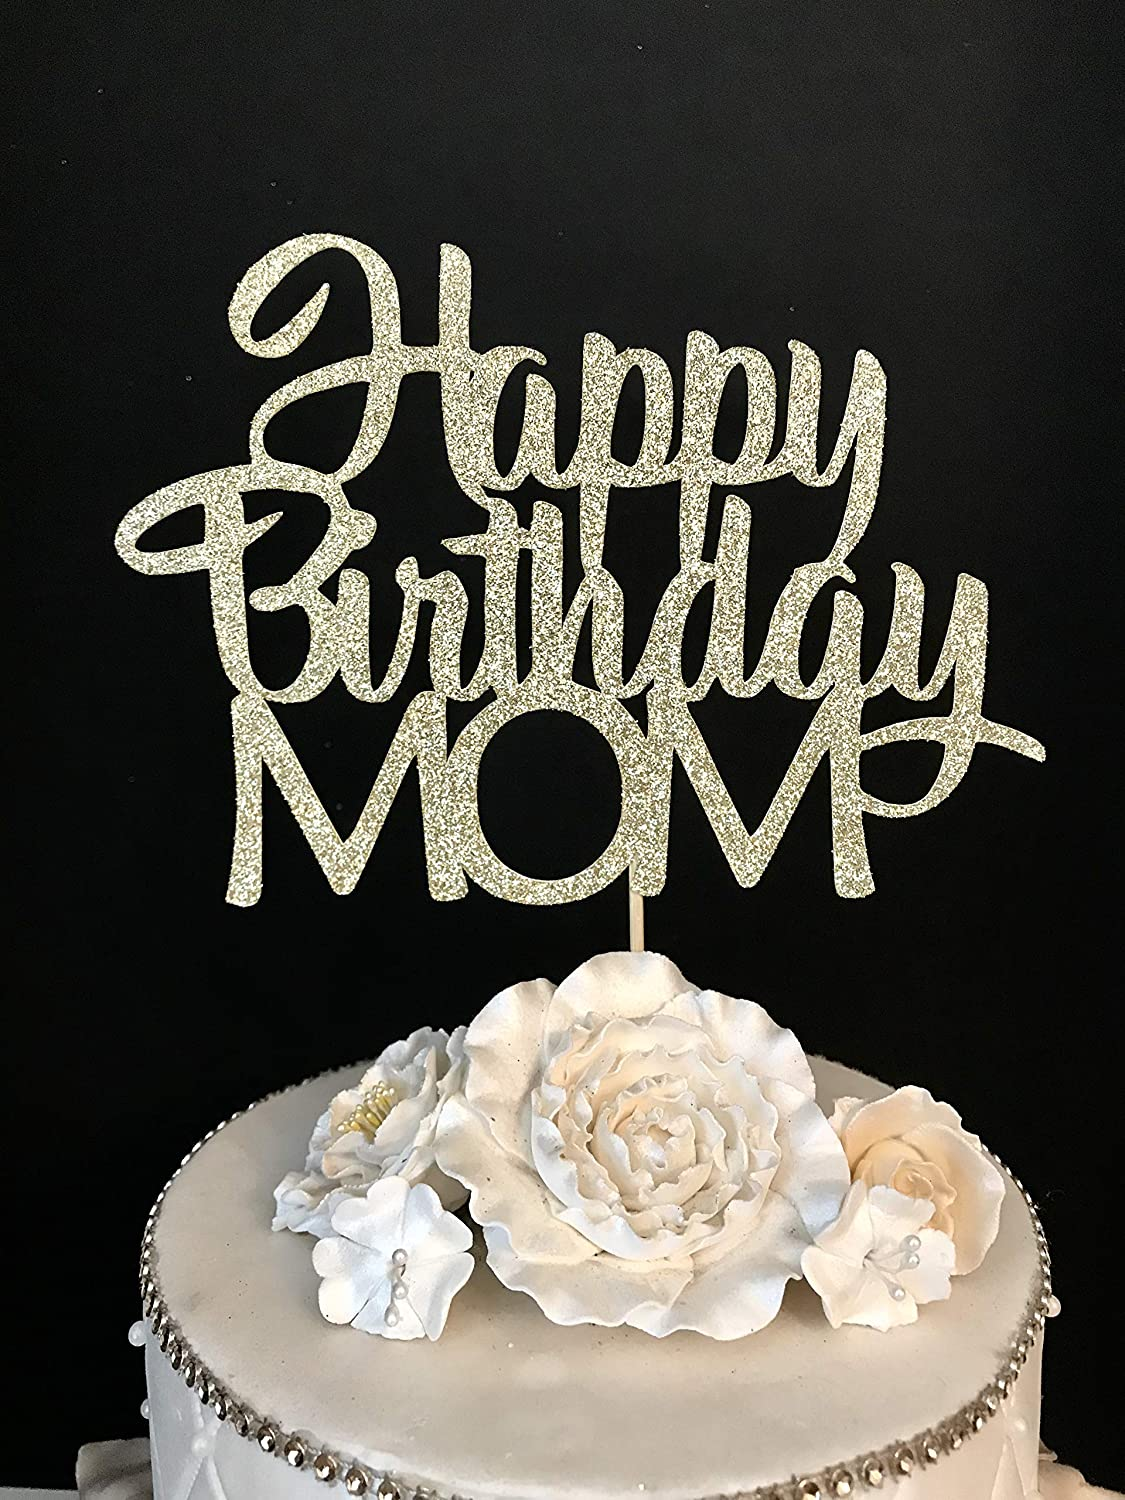 Marvelous Amazon Com Happy Birthday Mom Cake Topper Arts Crafts Sewing Personalised Birthday Cards Arneslily Jamesorg